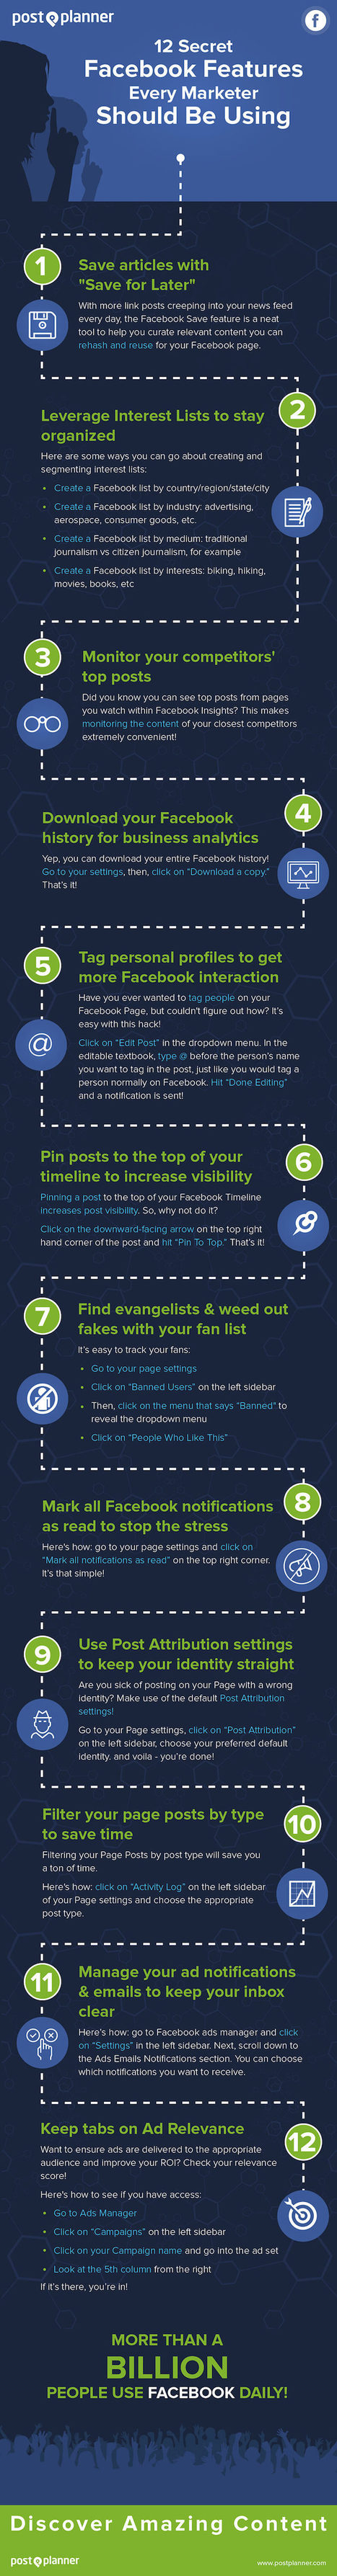 12 Secret Facebook Features Every Marketer Should Be Using #Infographic | social media useful  tools | Scoop.it